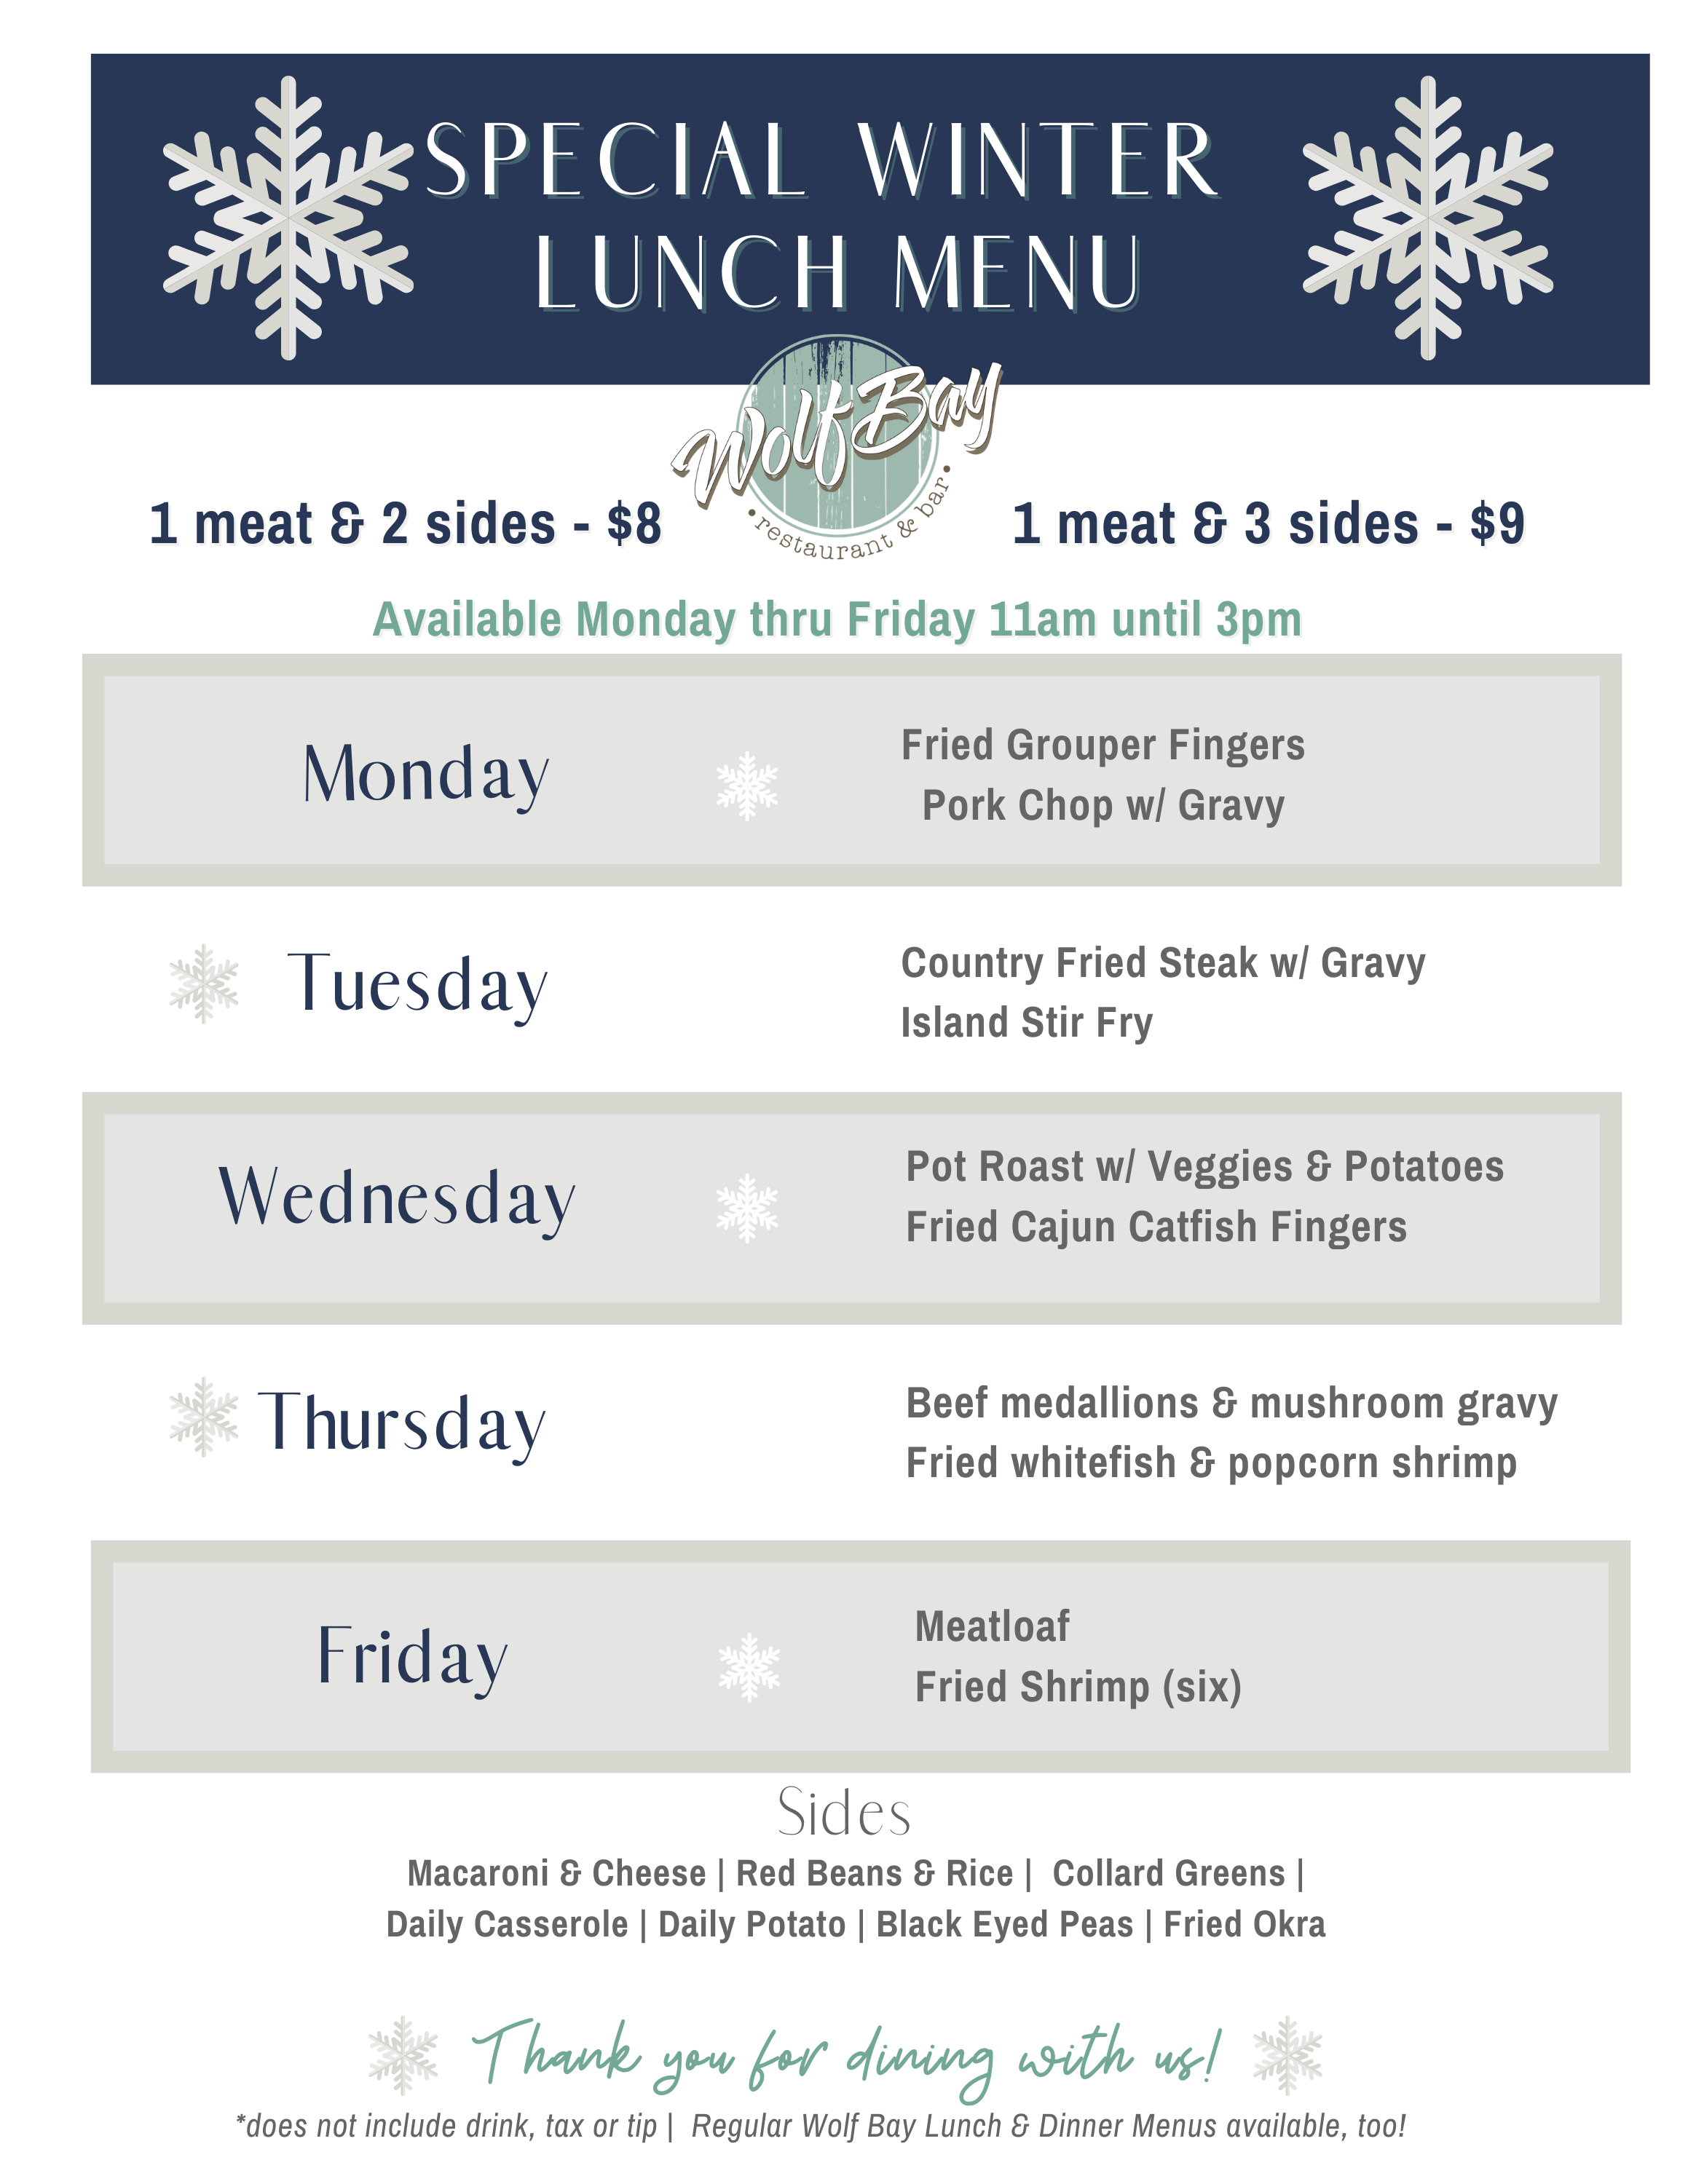 Specialty Winter Lunch Menu